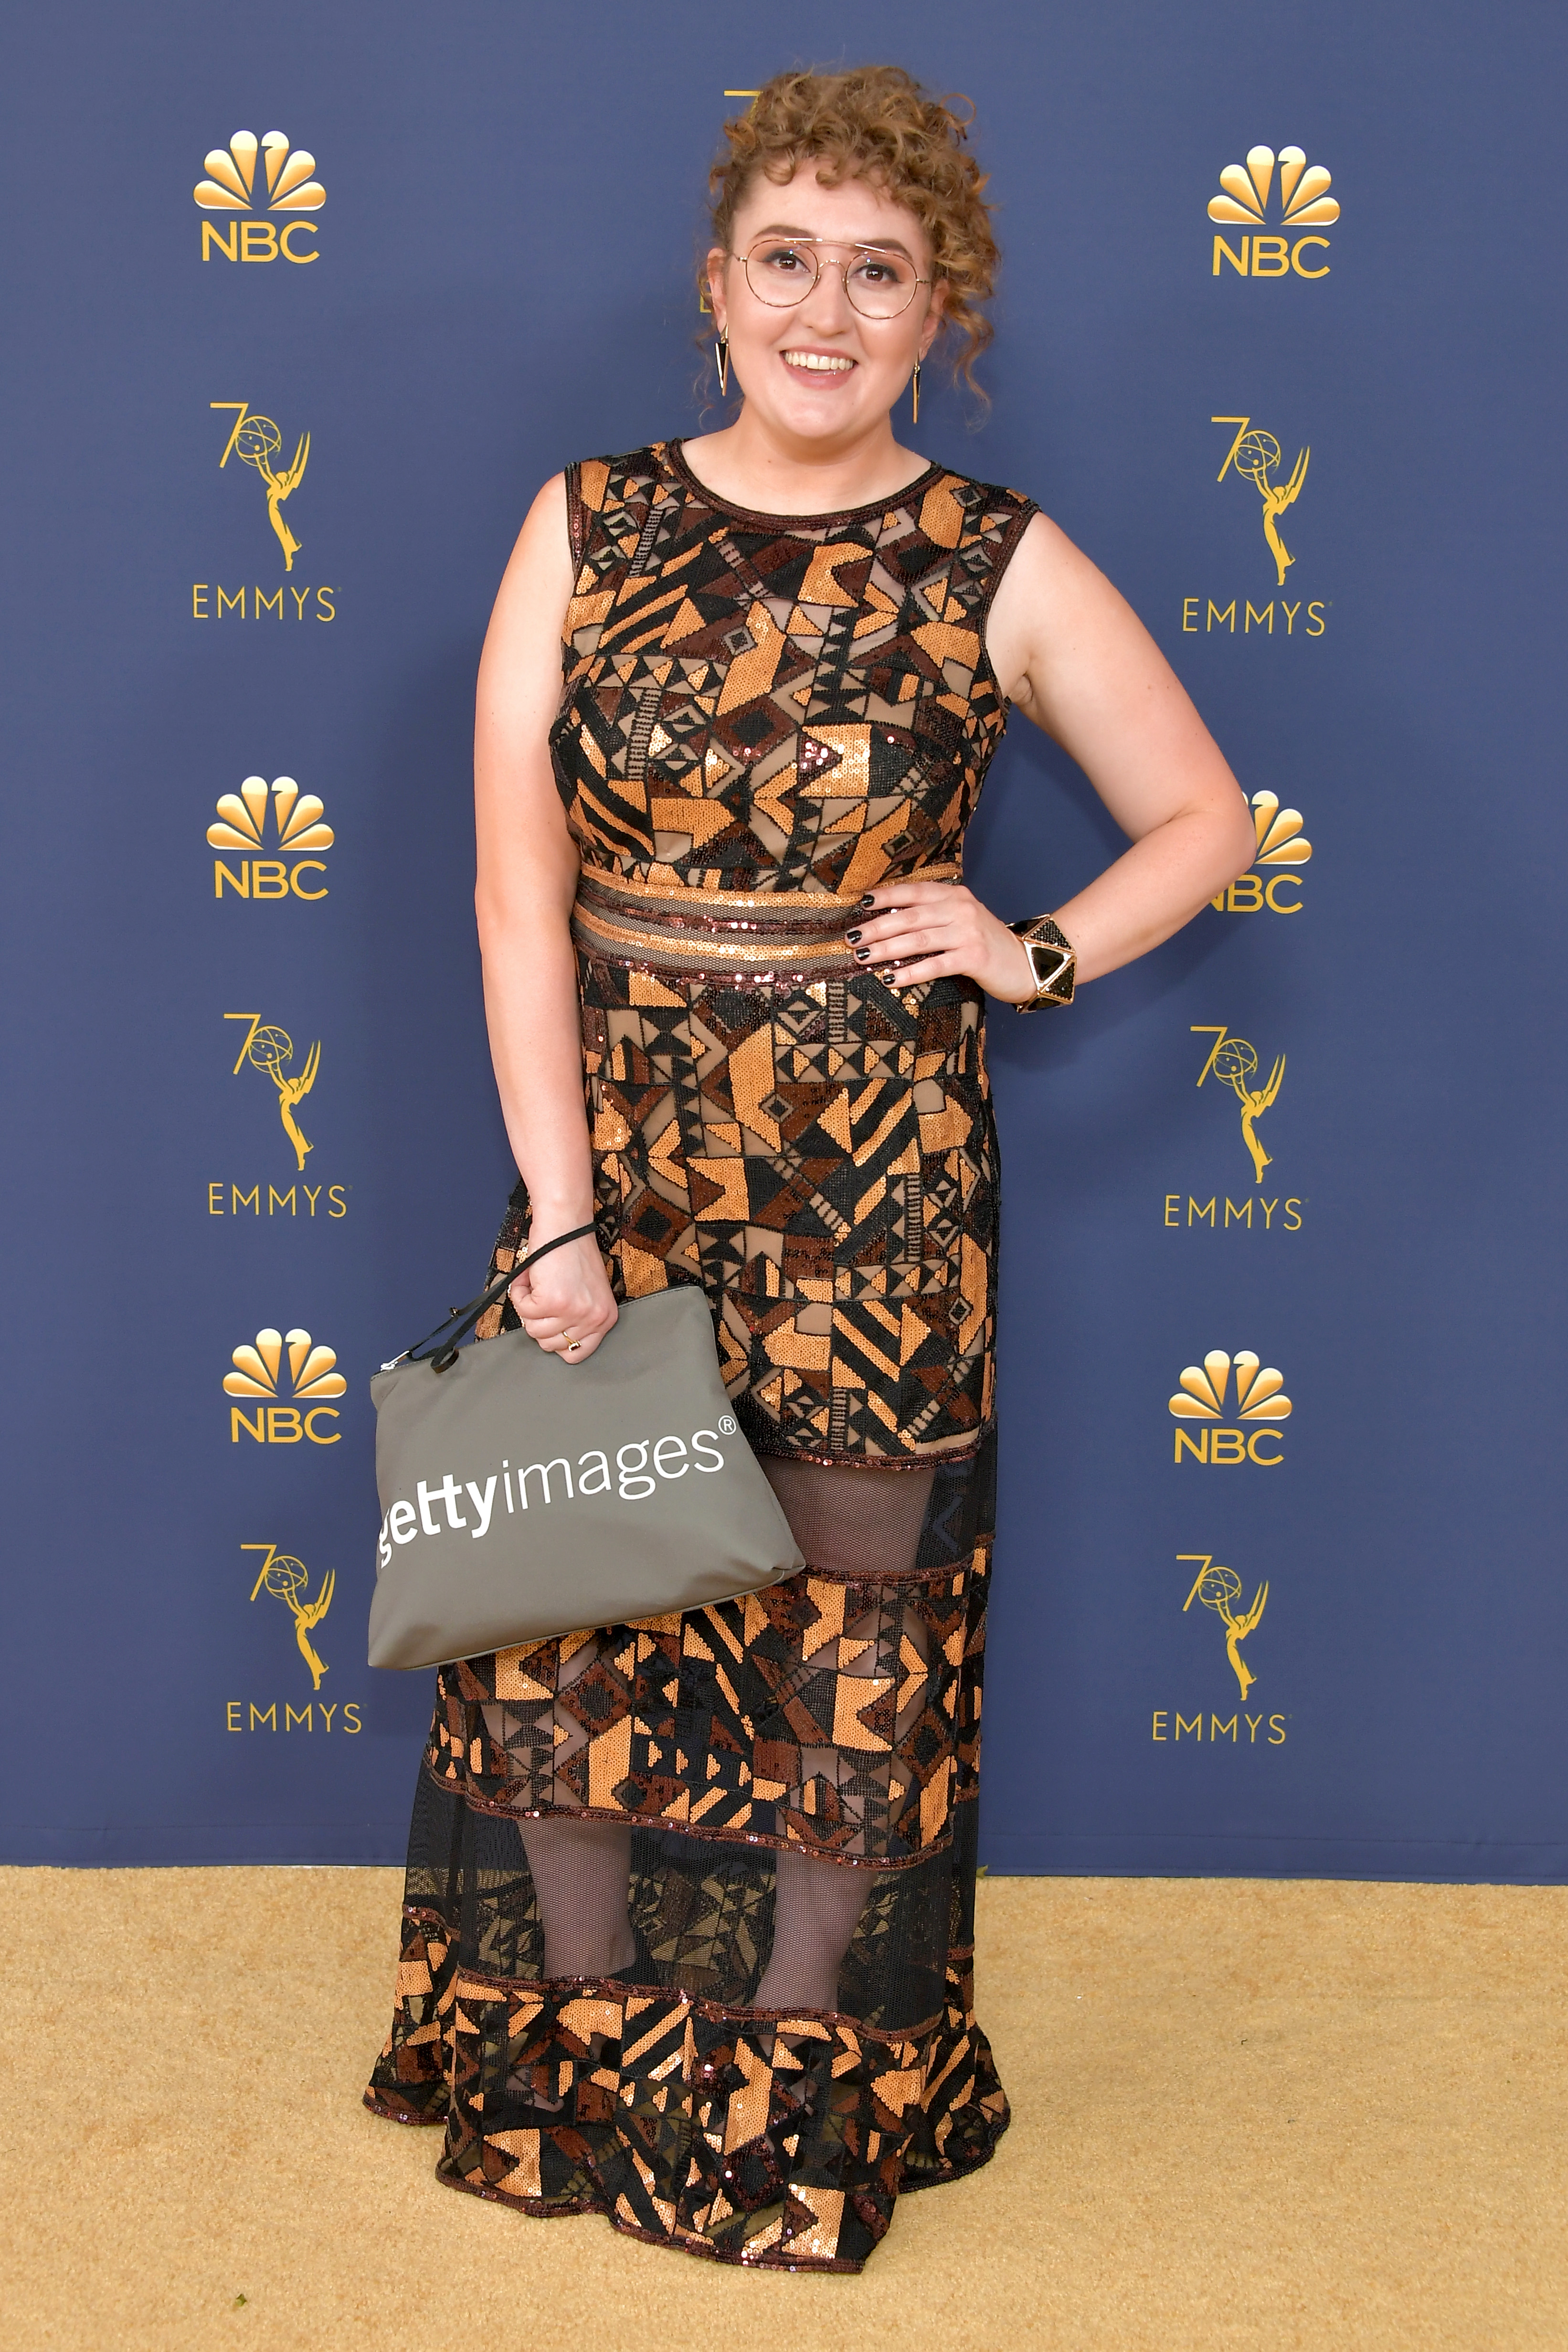 Emily Heller attends the 70th Emmy Awards at Microsoft Theater on September 17, 2018 in Los Angeles, California.